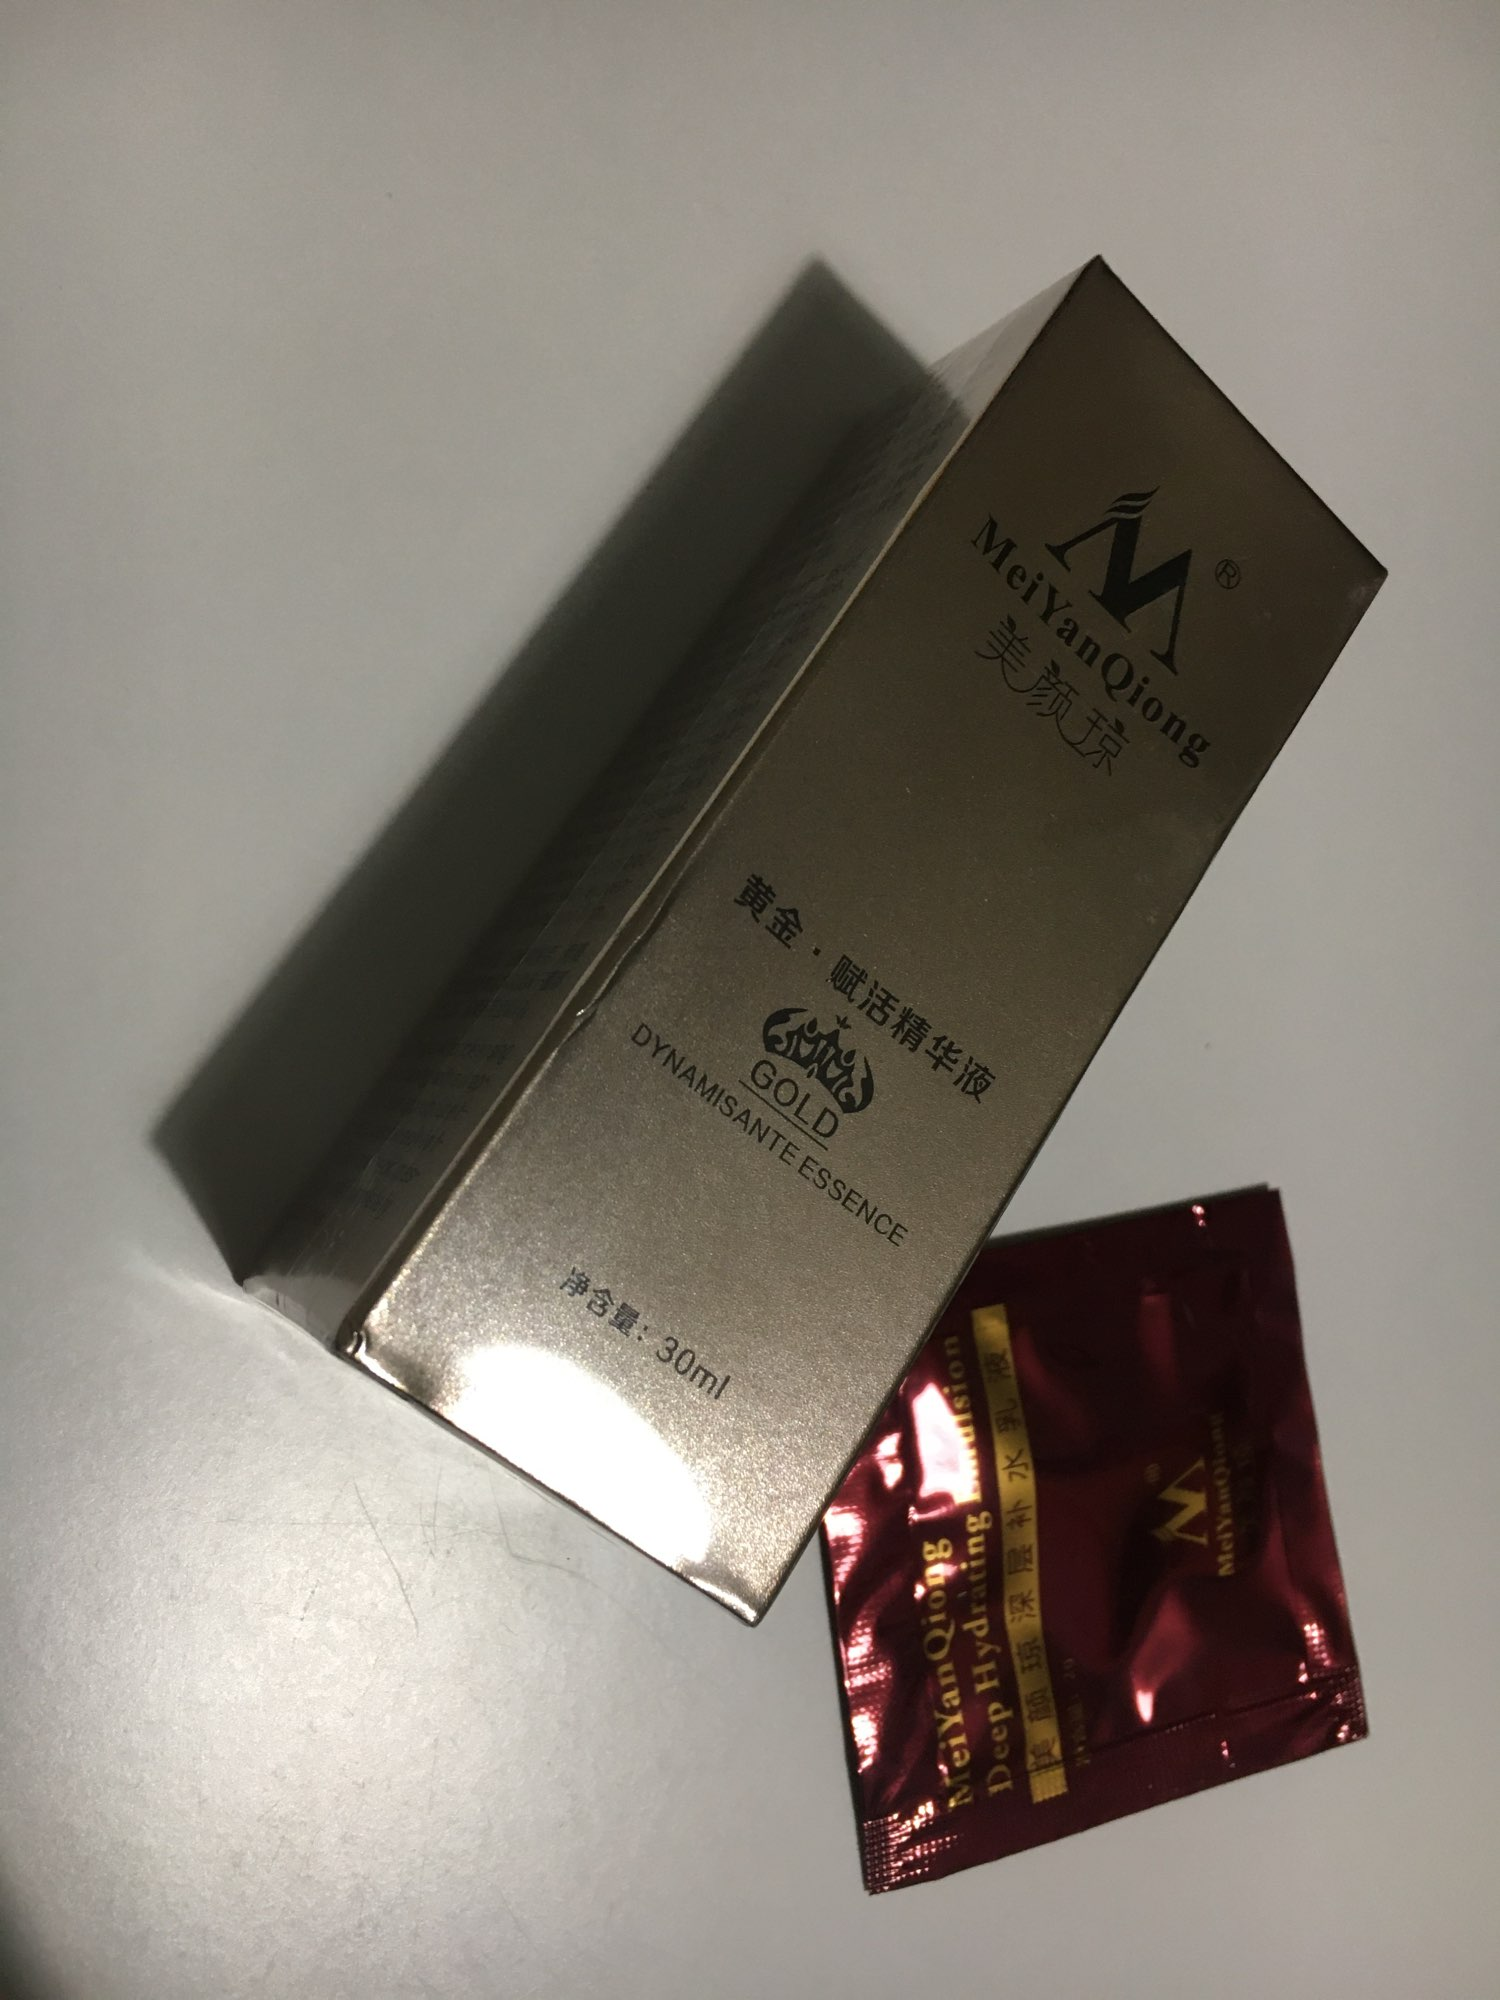 24K Gold Dynamisant Essence photo review